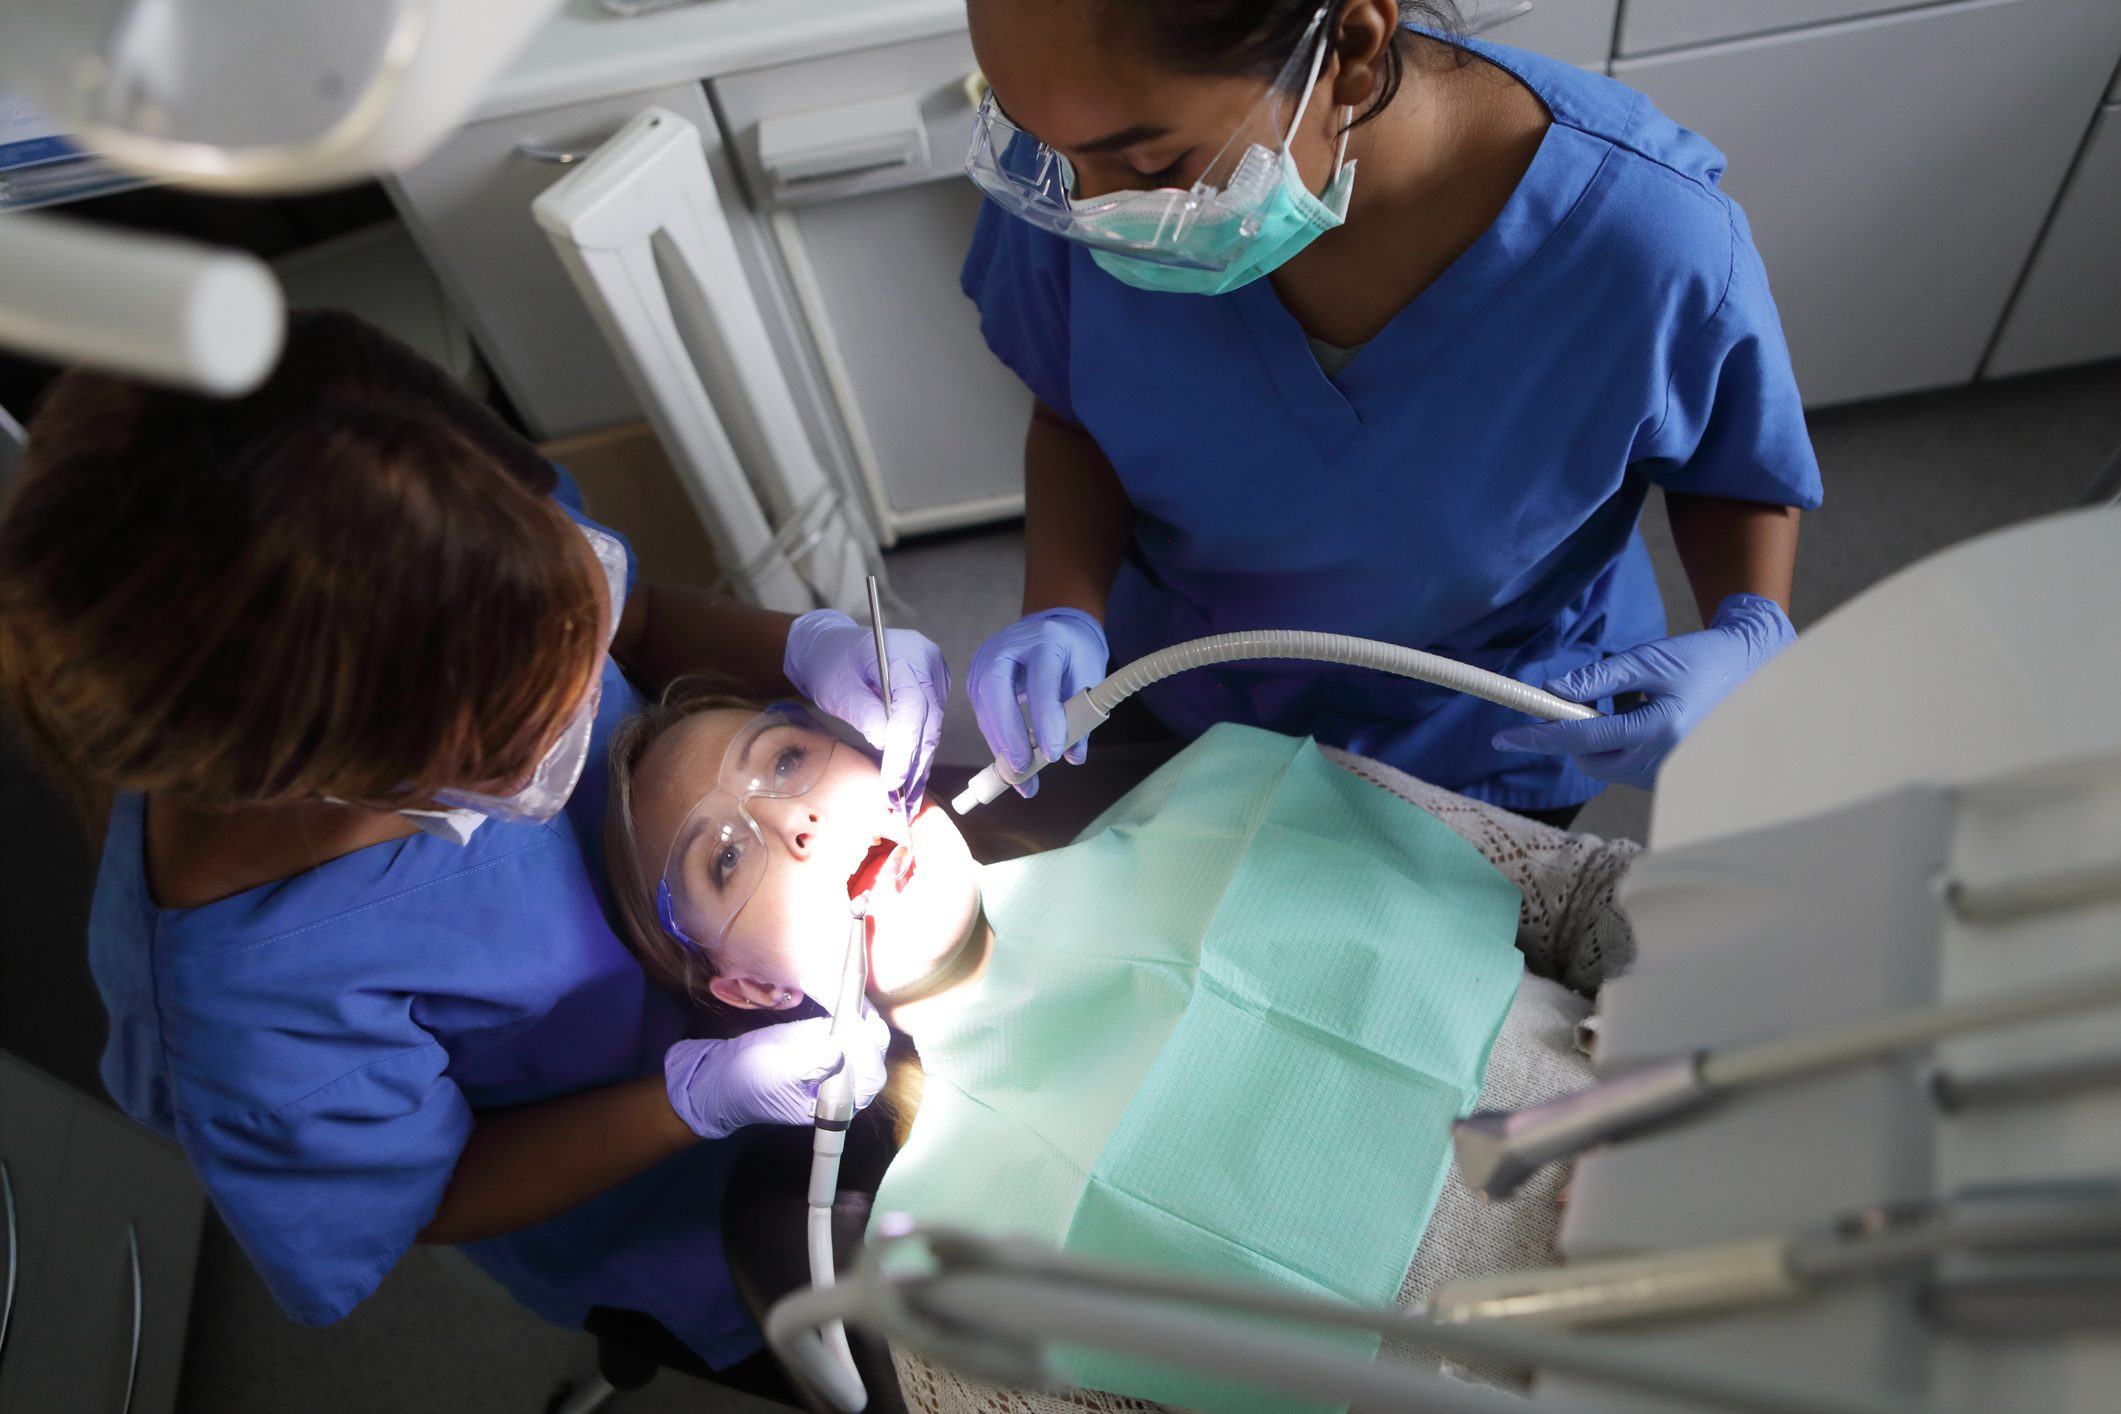 Dentist working on patient in chair